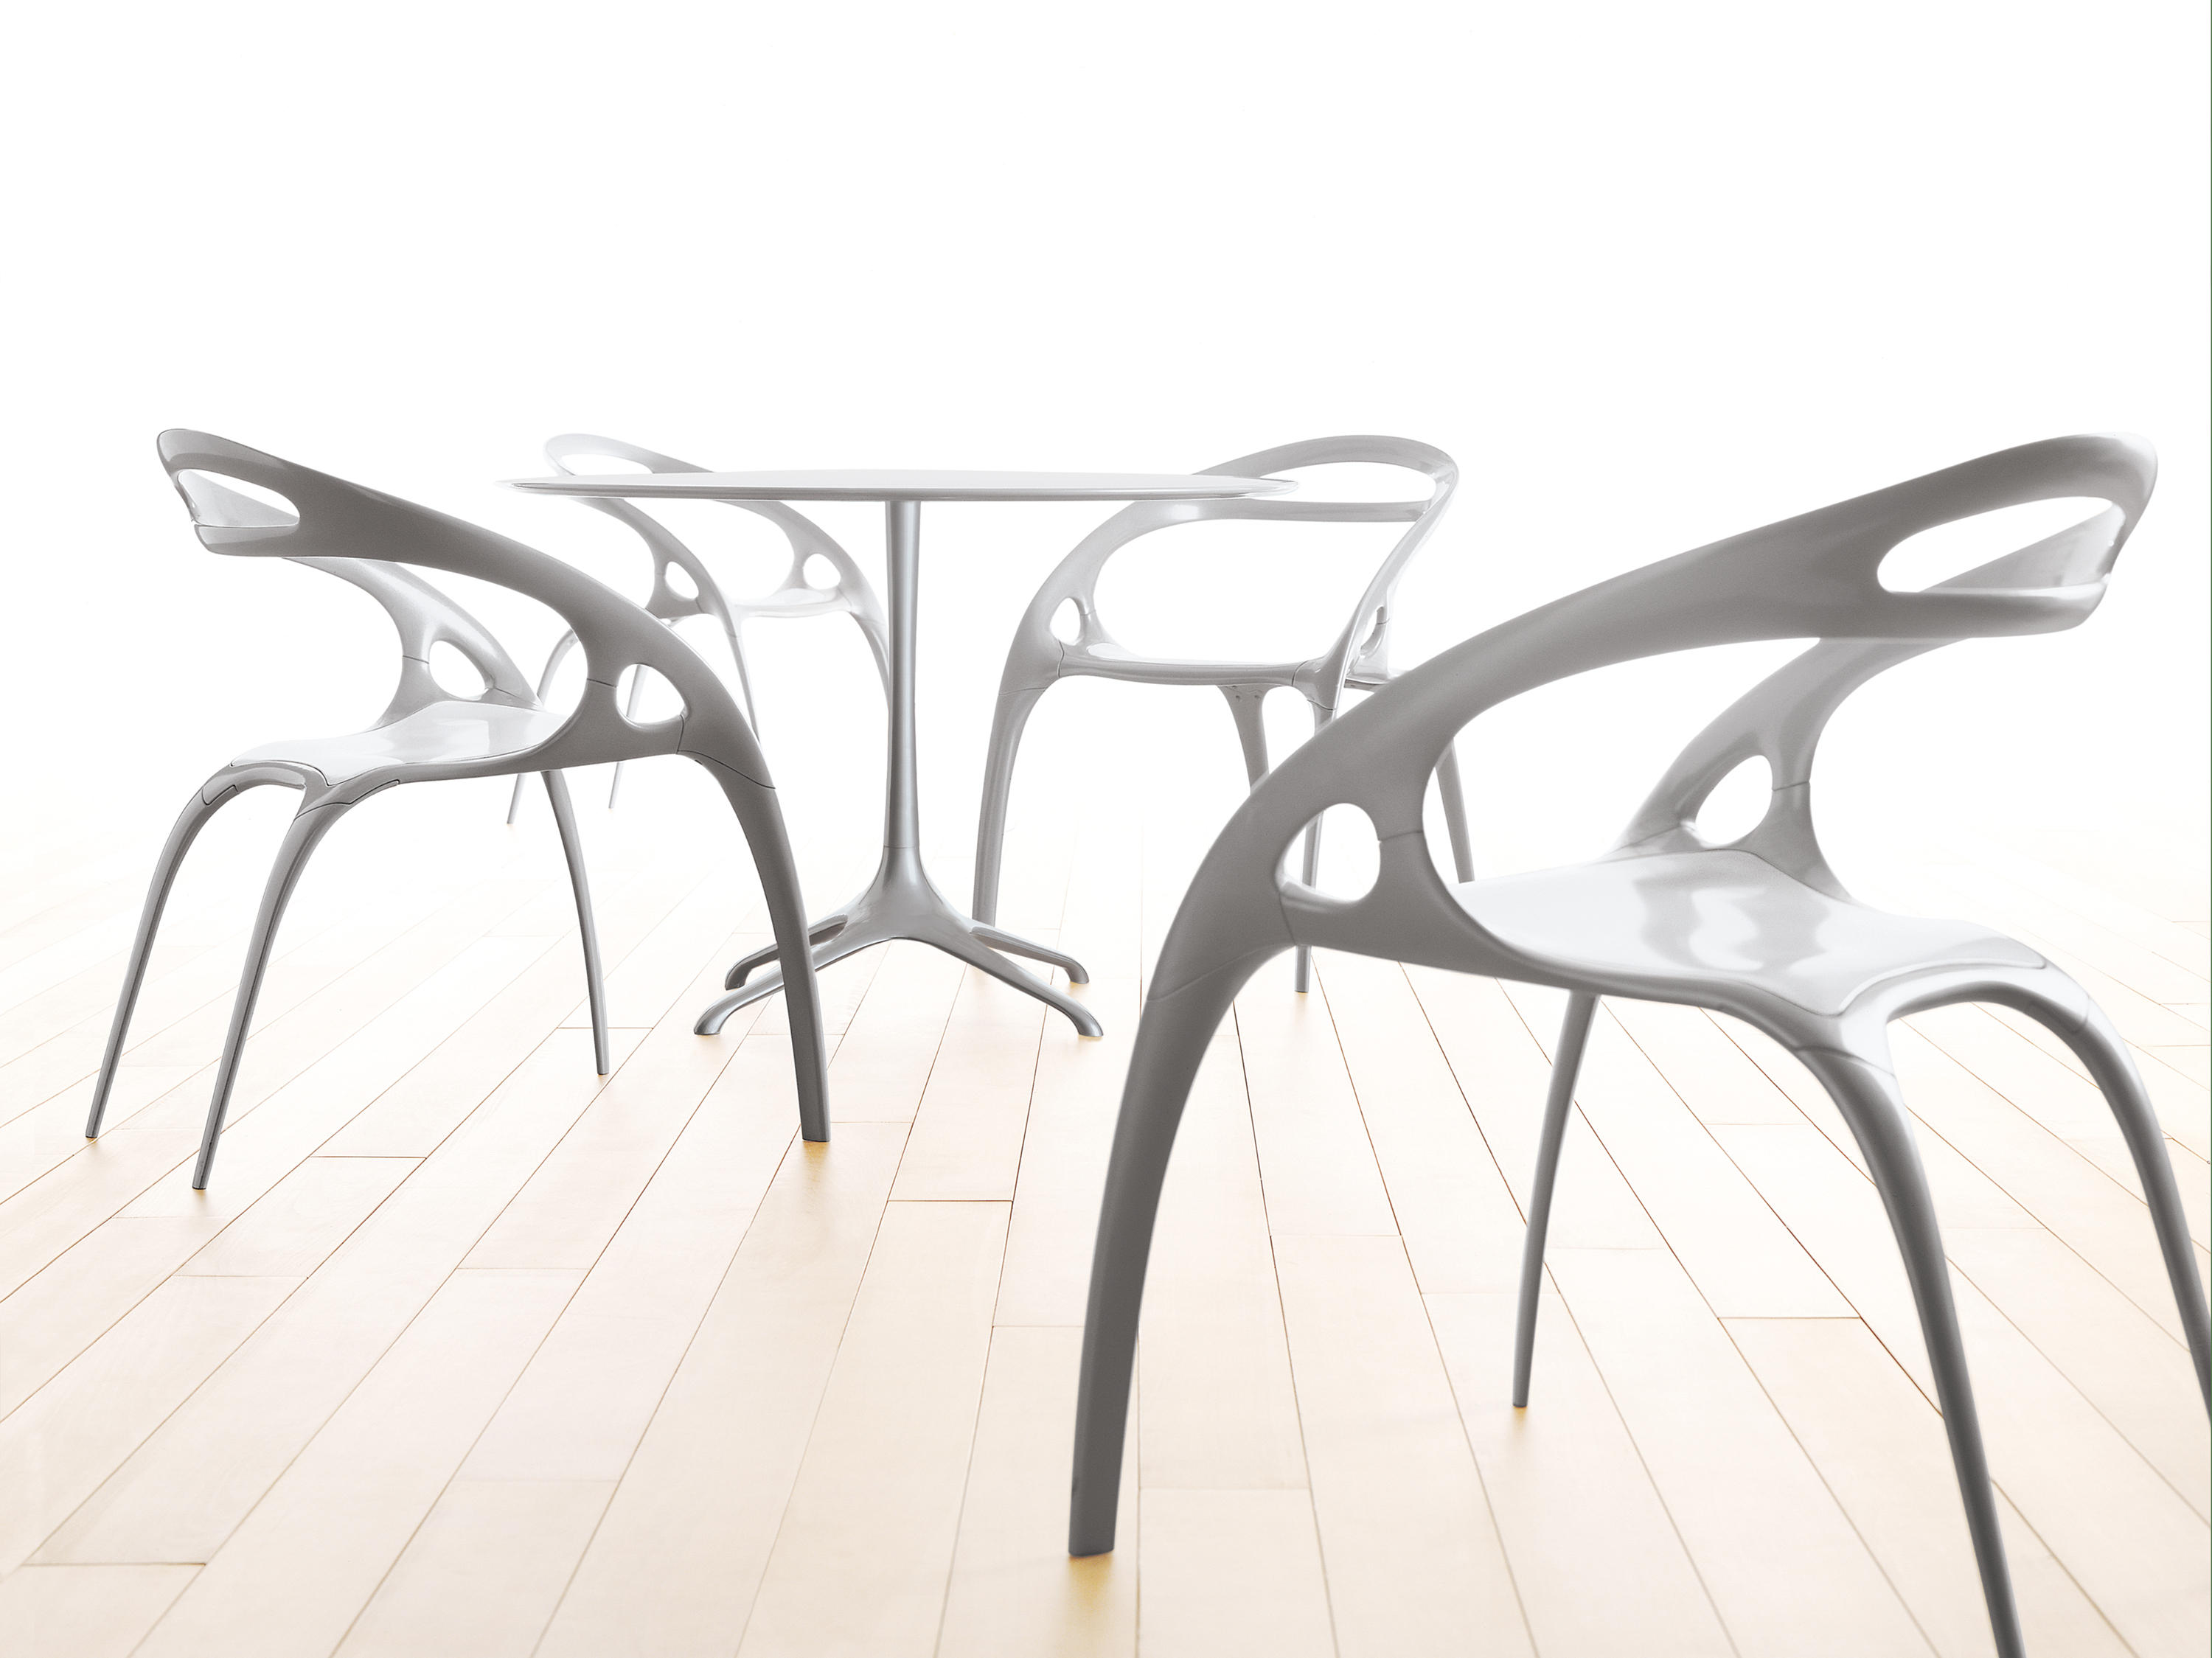 go chairs from bernhardt design architonic